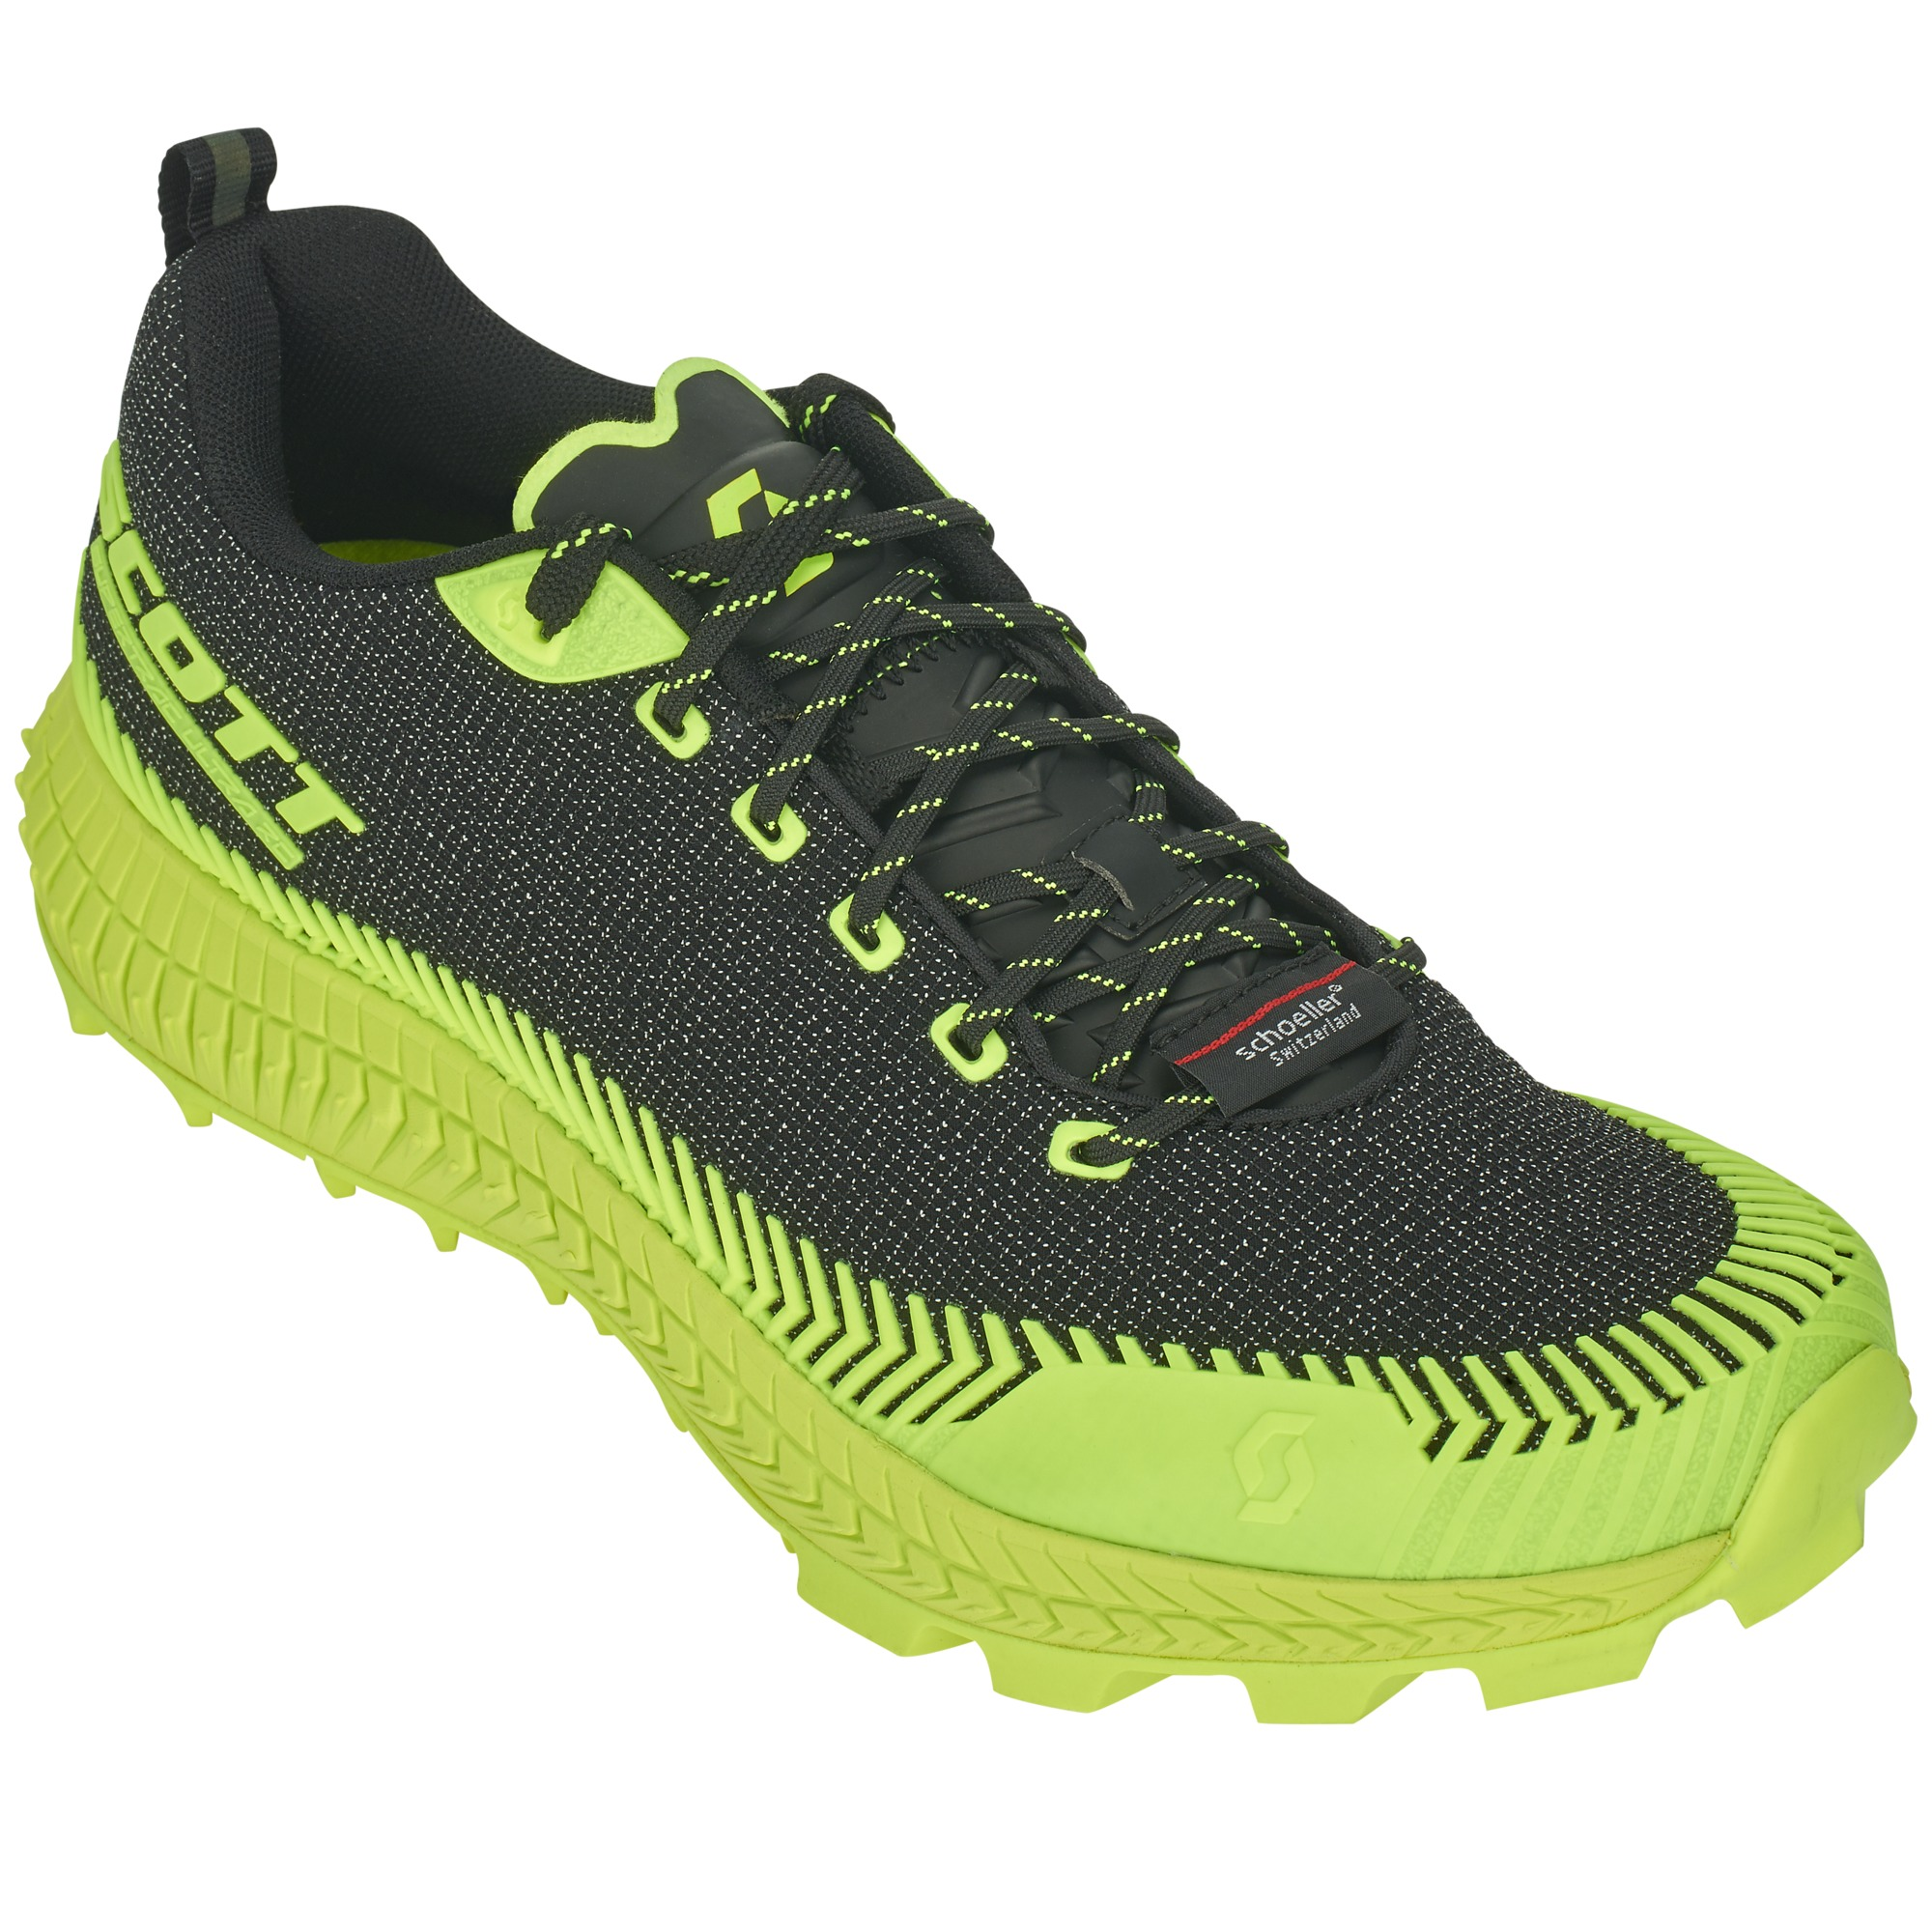 Chaussures femme SCOTT Supertrac Ultra RC